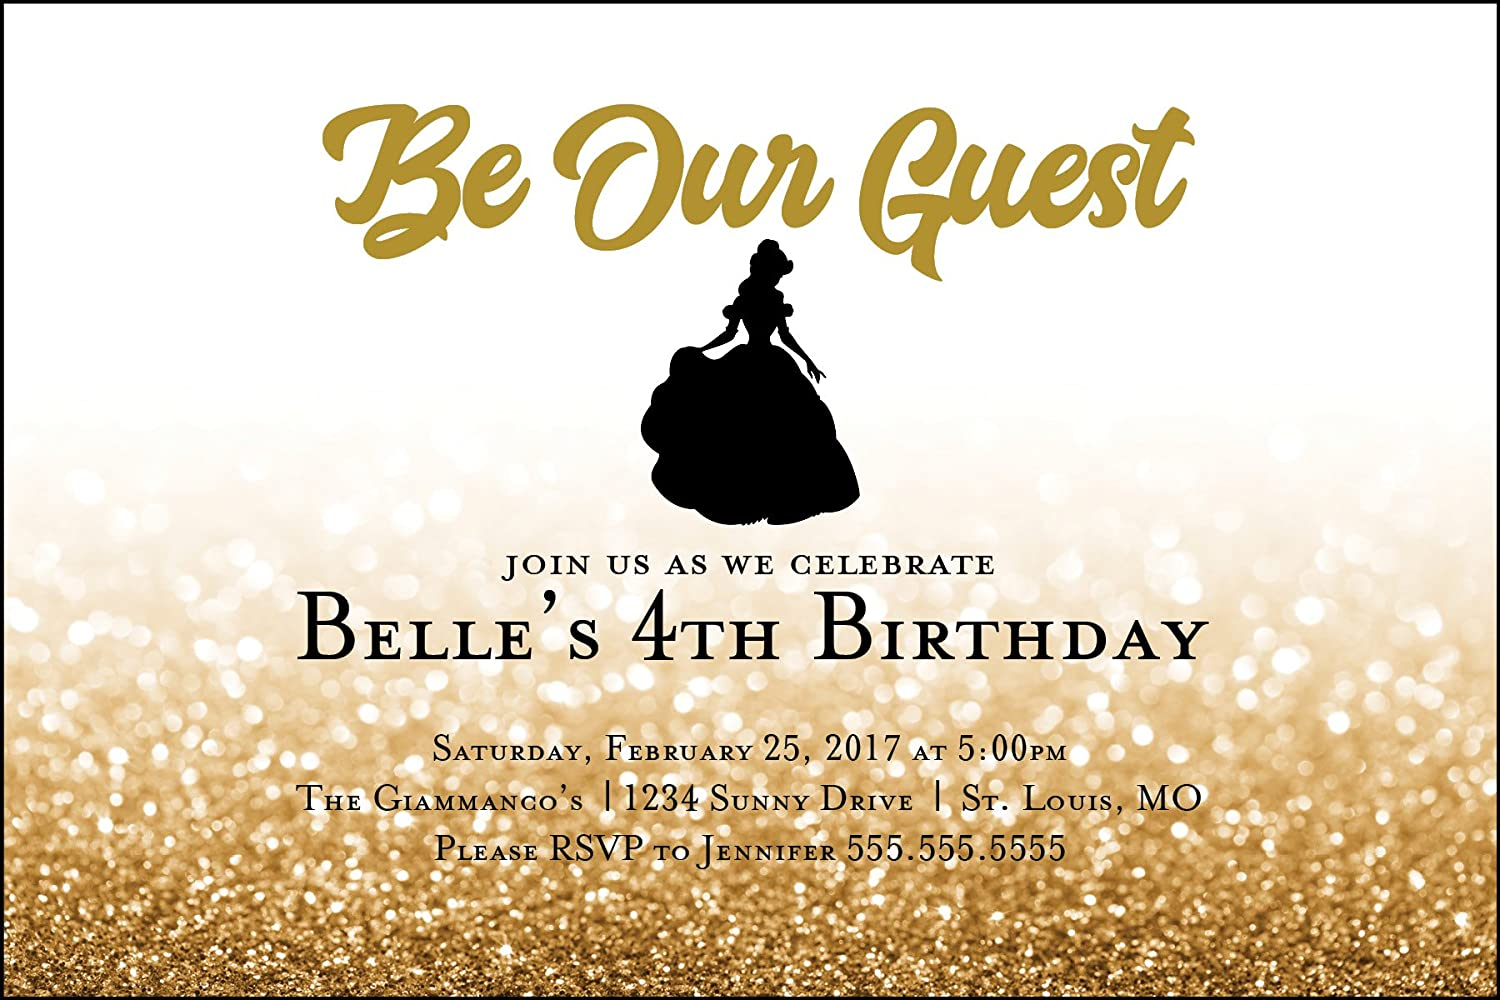 Beauty and the beast birthday party invitations birthday wikii custom birthday party invitation beauty and the beast personalized please include your amazon order number in your subject line stopboris Choice Image